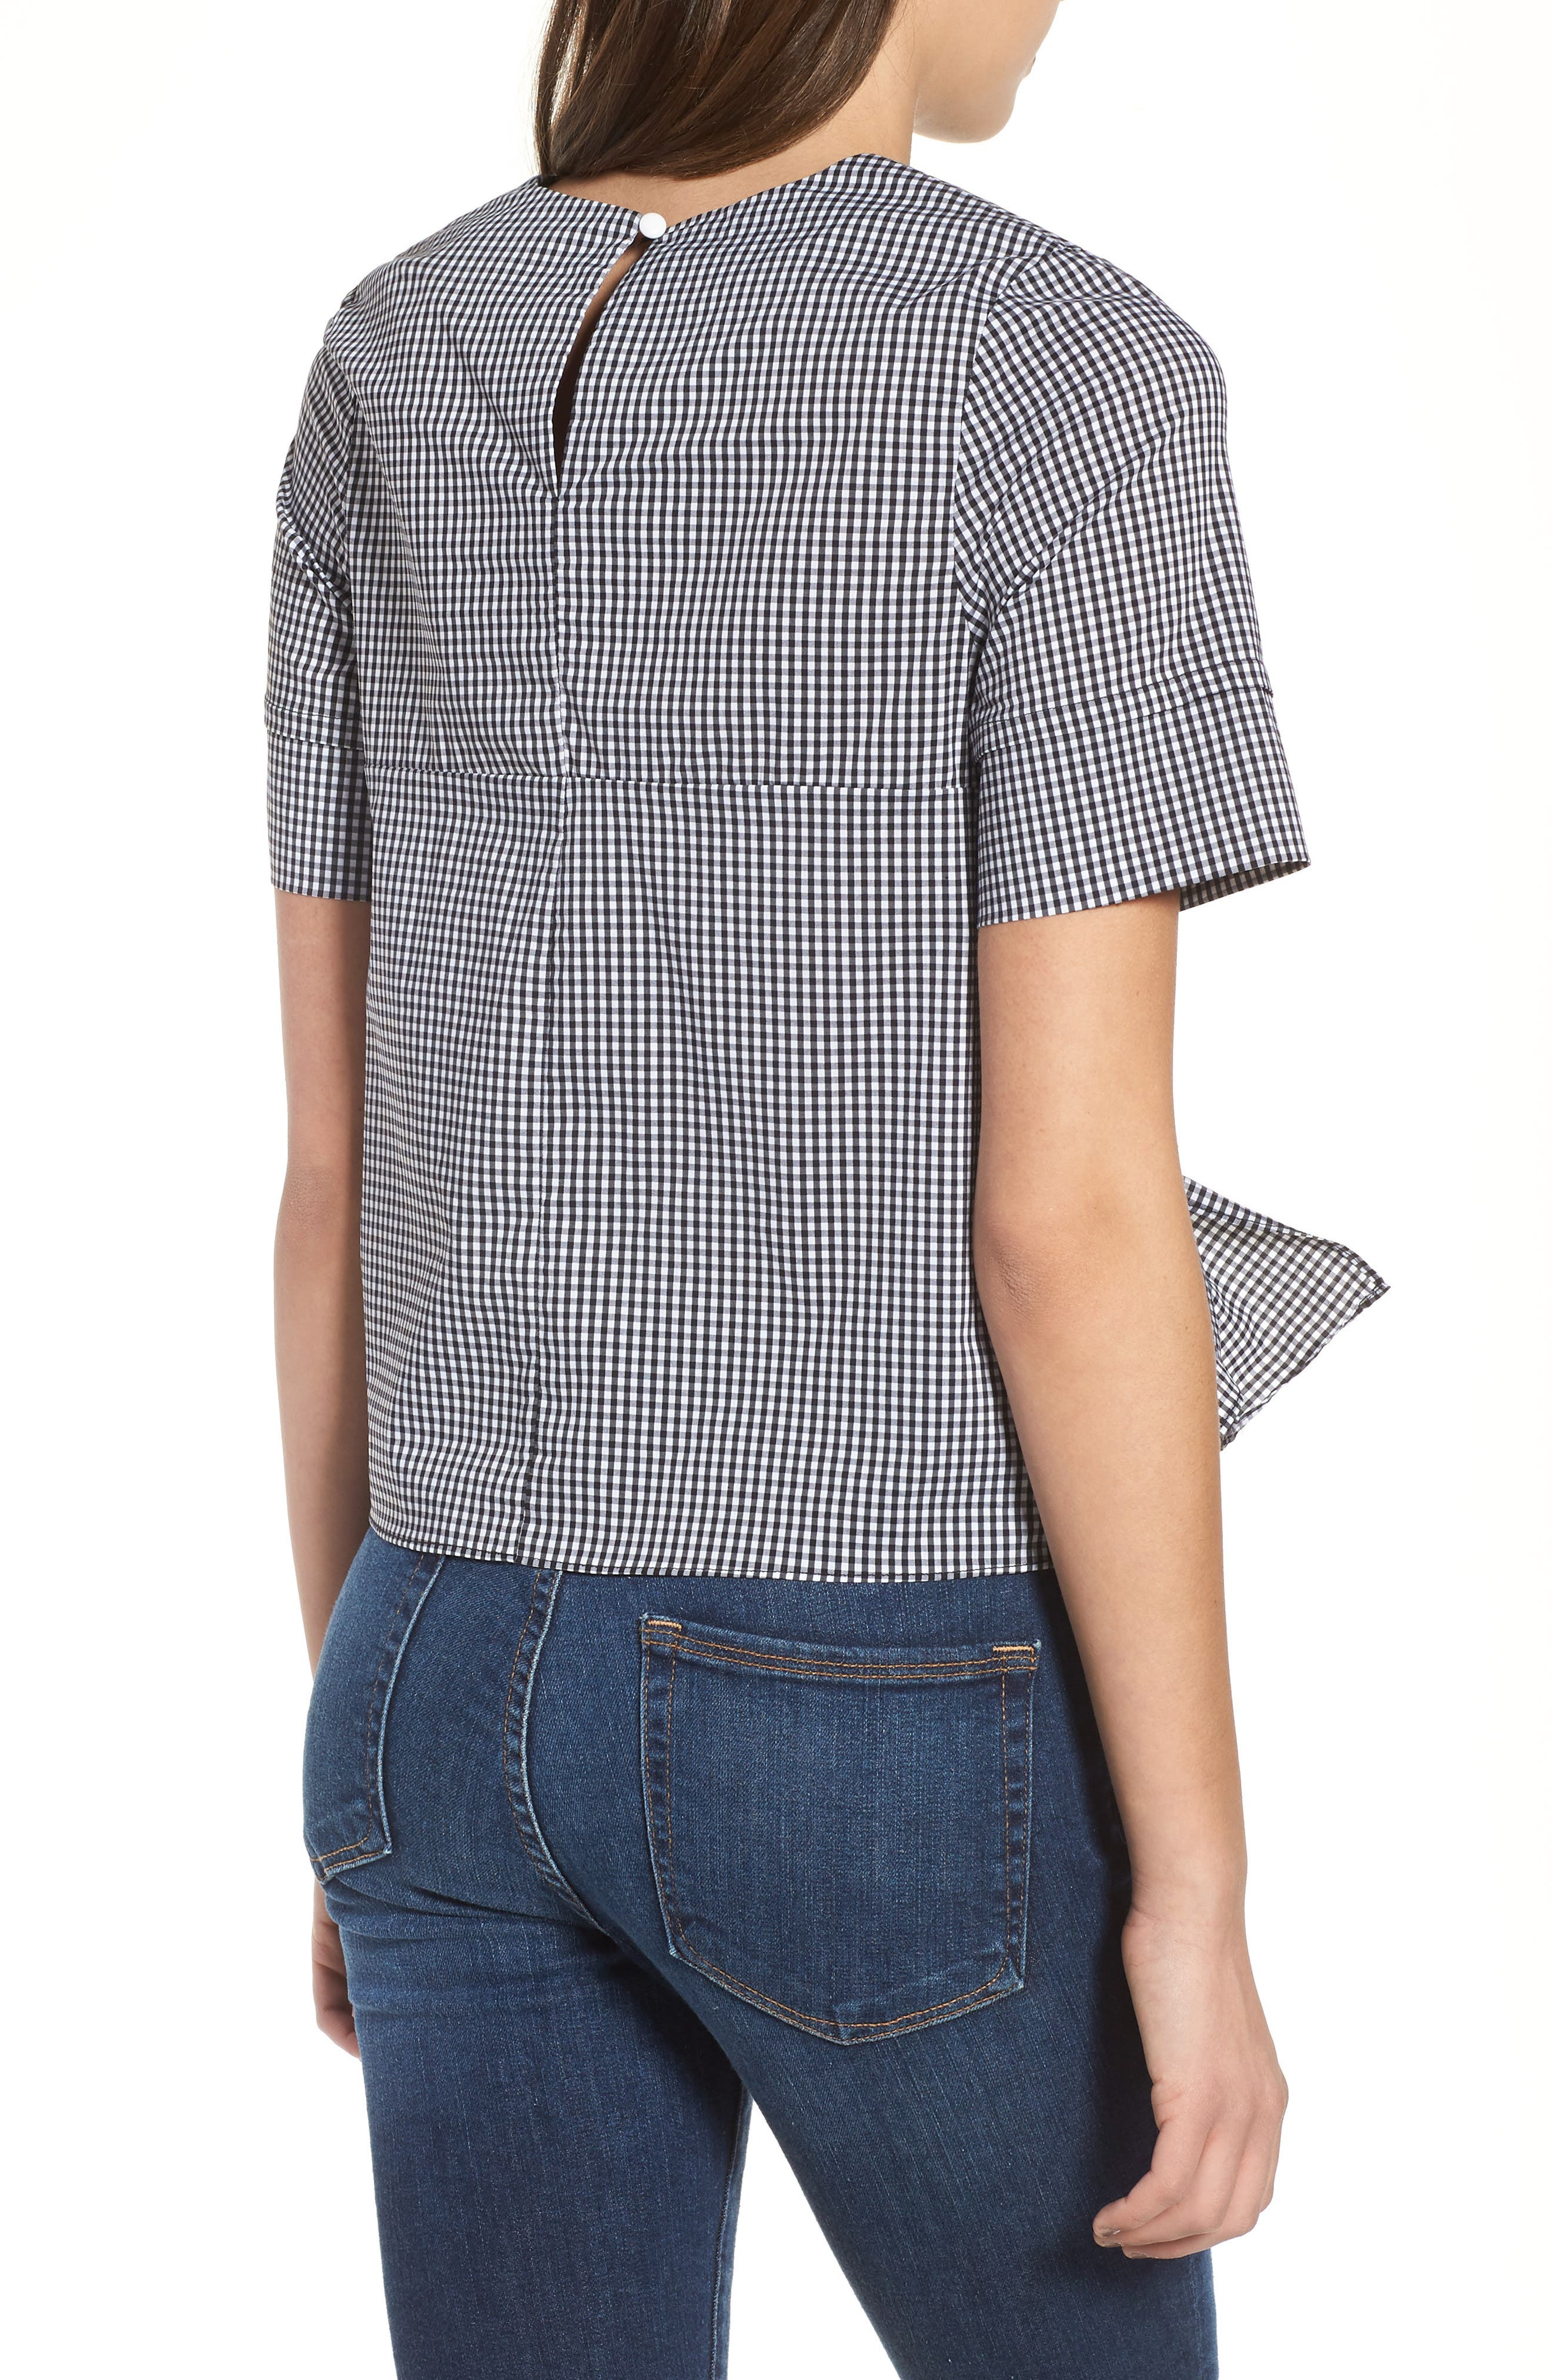 Bishop + Young Gingham Tie Front Blouse,                             Alternate thumbnail 2, color,                             Gingham